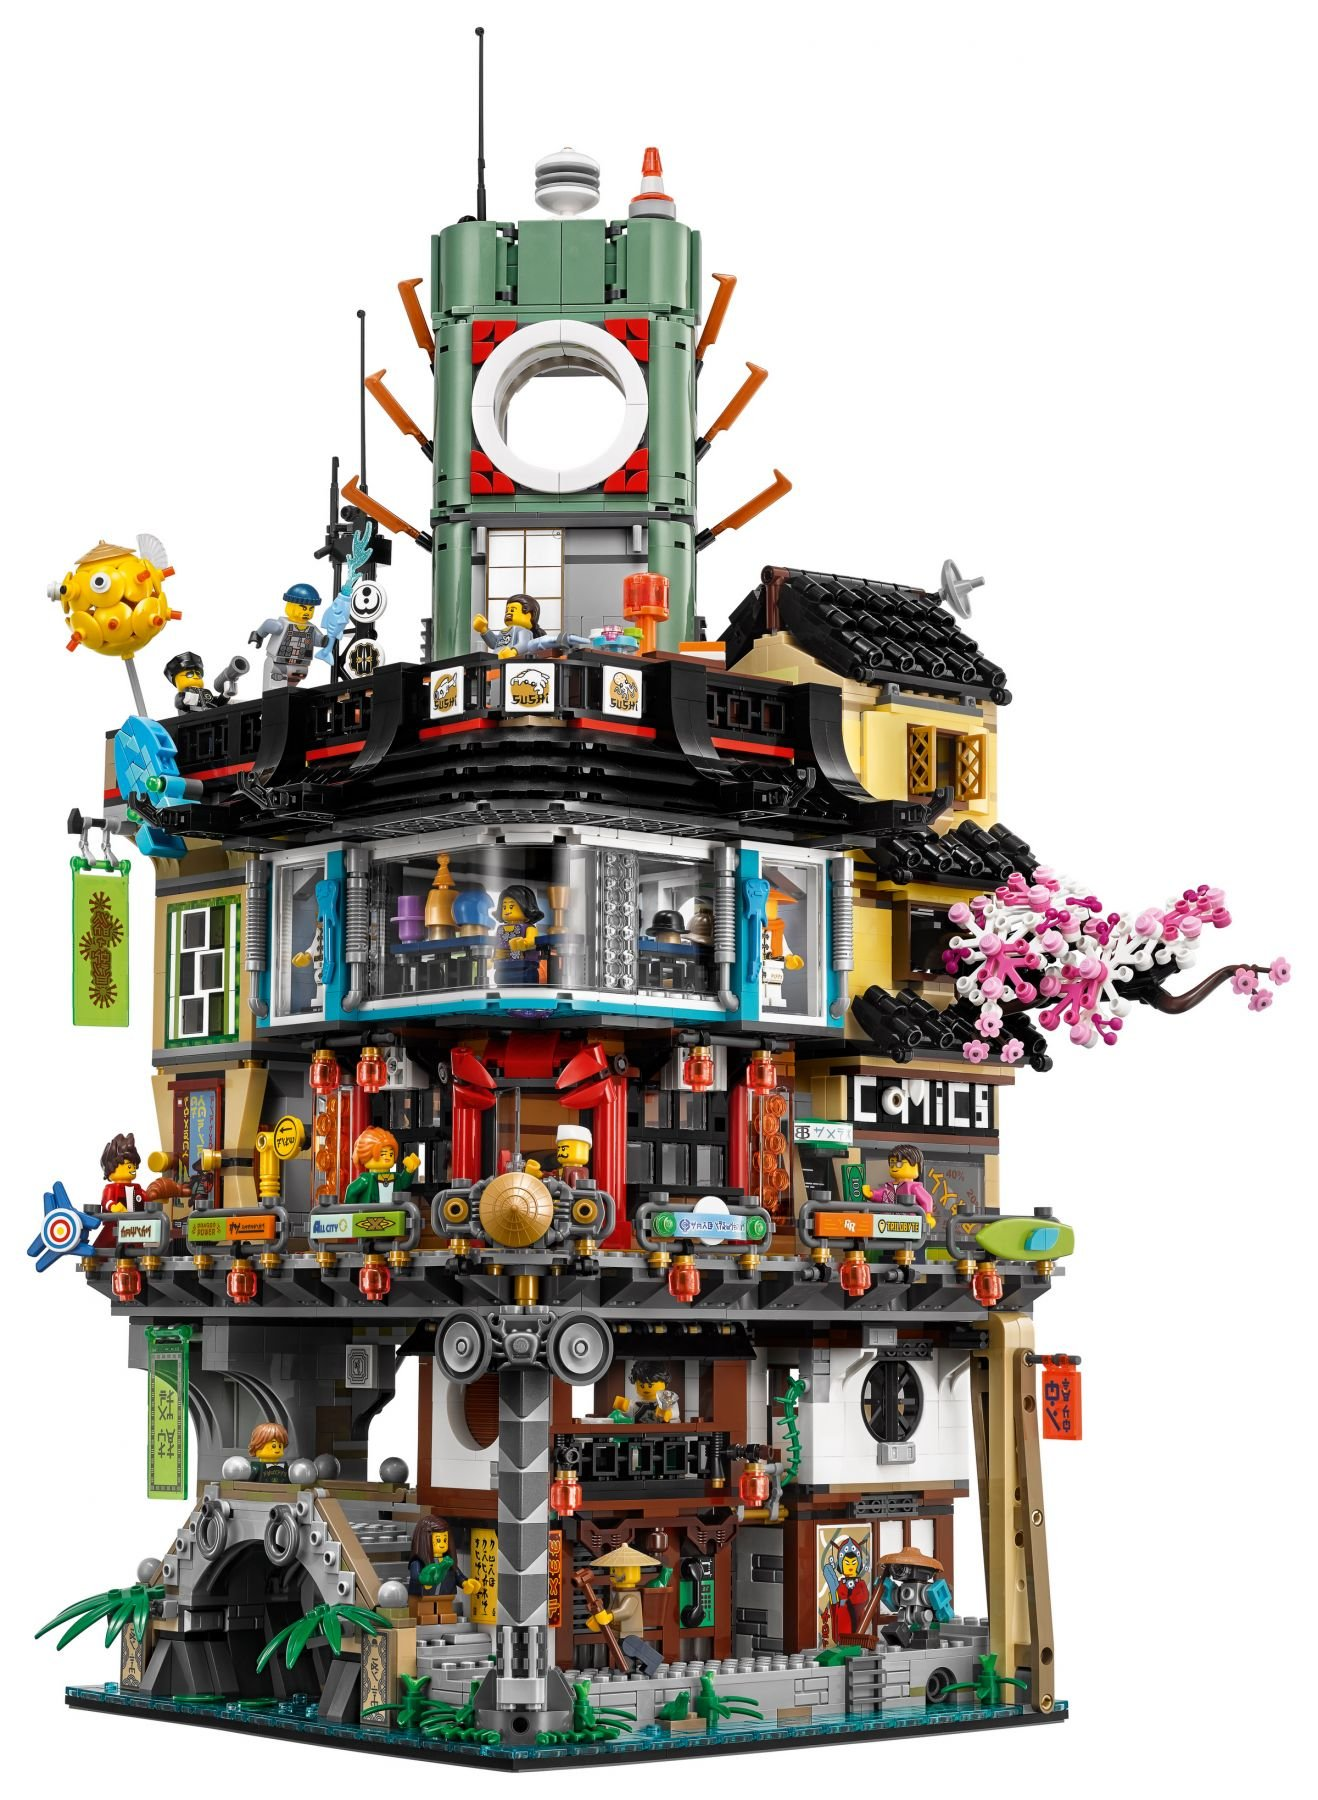 LEGO The LEGO Ninjago Movie 70620 Ninjago City LEGO_70620_alt2.jpg